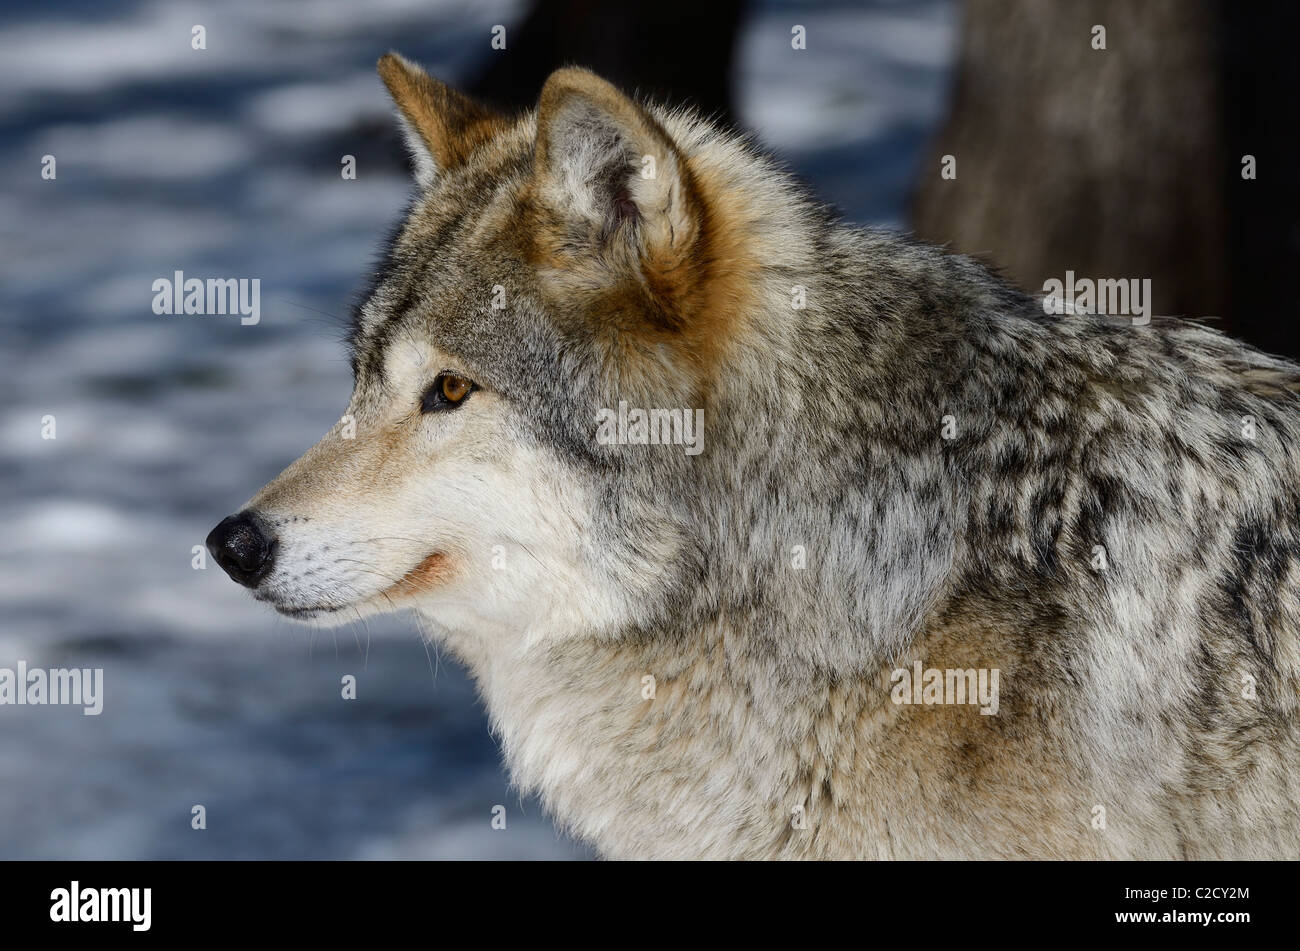 Close up profile of a male Gray Wolf or Timber wolf Canis Lupus face in a North Ontario forest with snow in spring - Stock Image